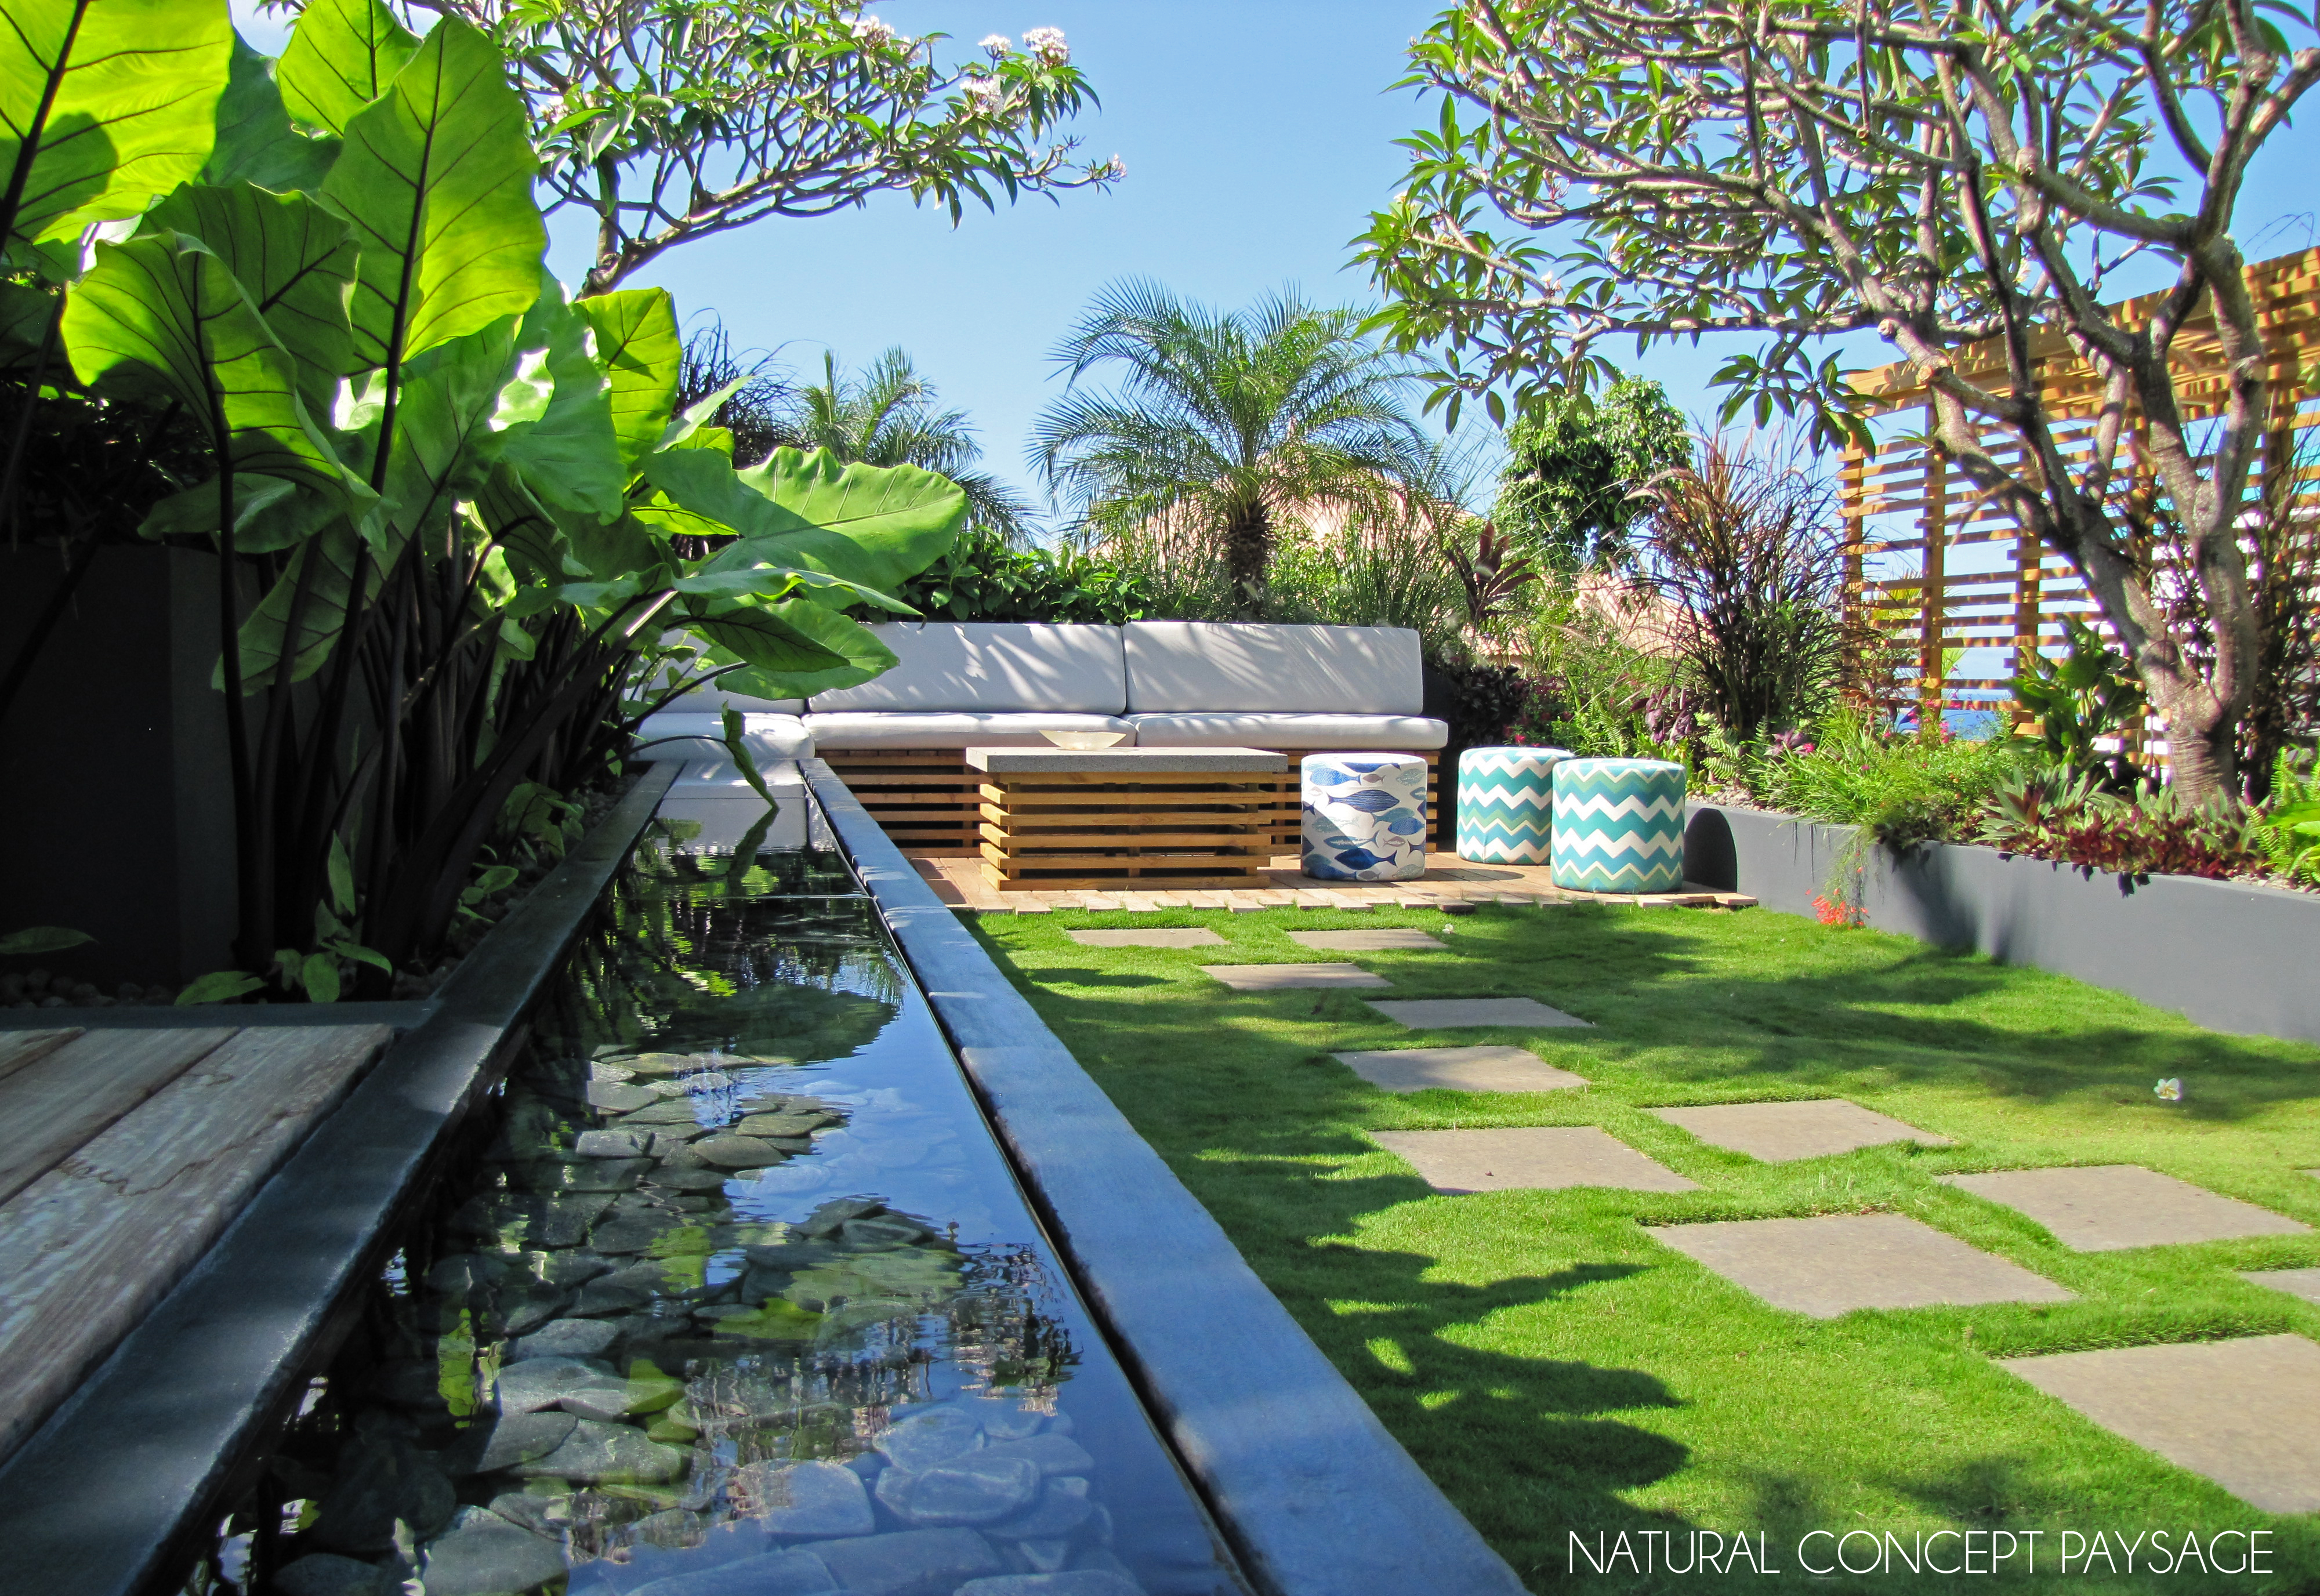 Natural concept paysage hotel blue margouillat st leu for Piscine jardin tropical